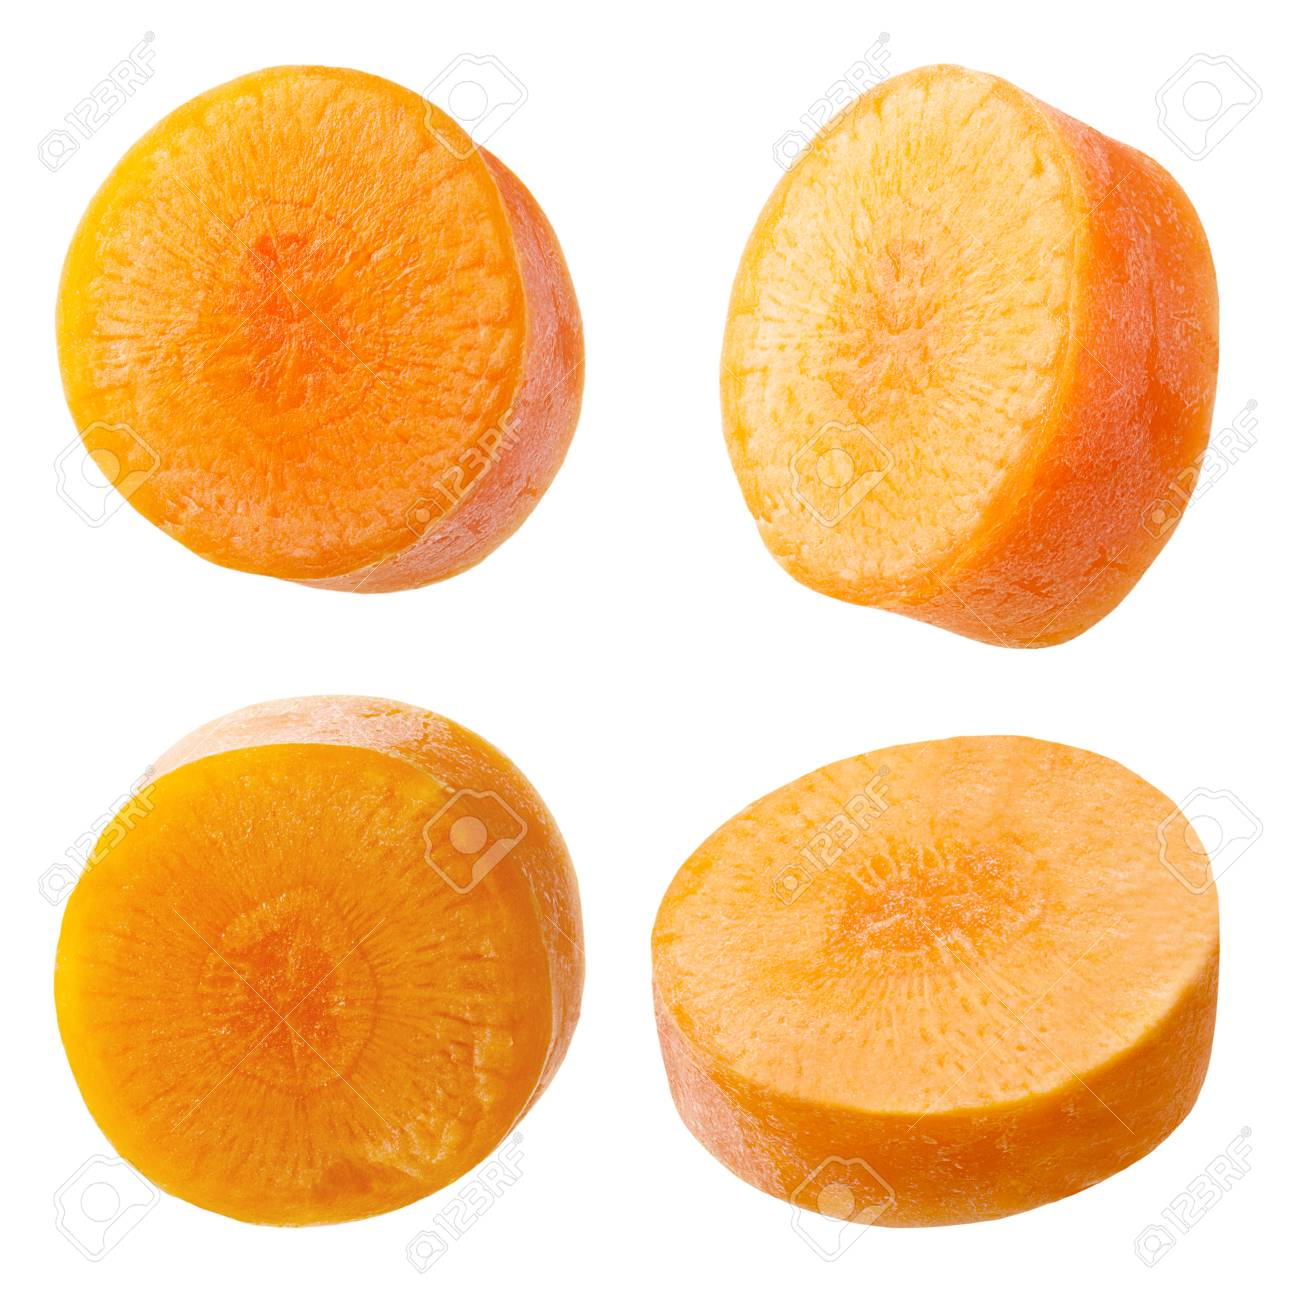 Isolated carrot. Set of freshly slices carrots  isolated on white background with clipping path as package design element. Archivio Fotografico - 97032513